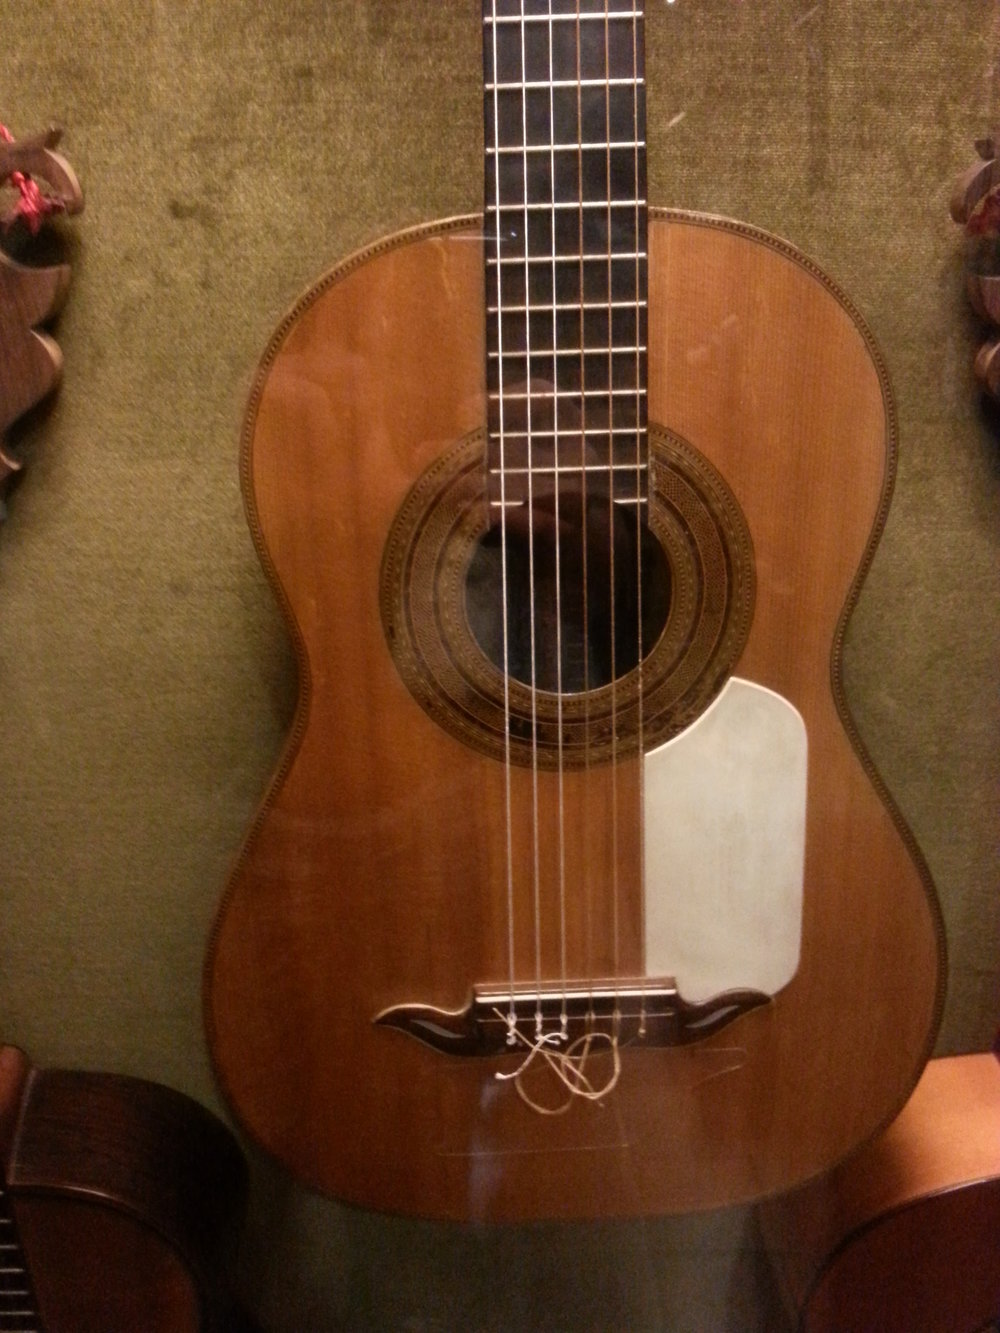 The Antonio de Torres guitar  FE 01